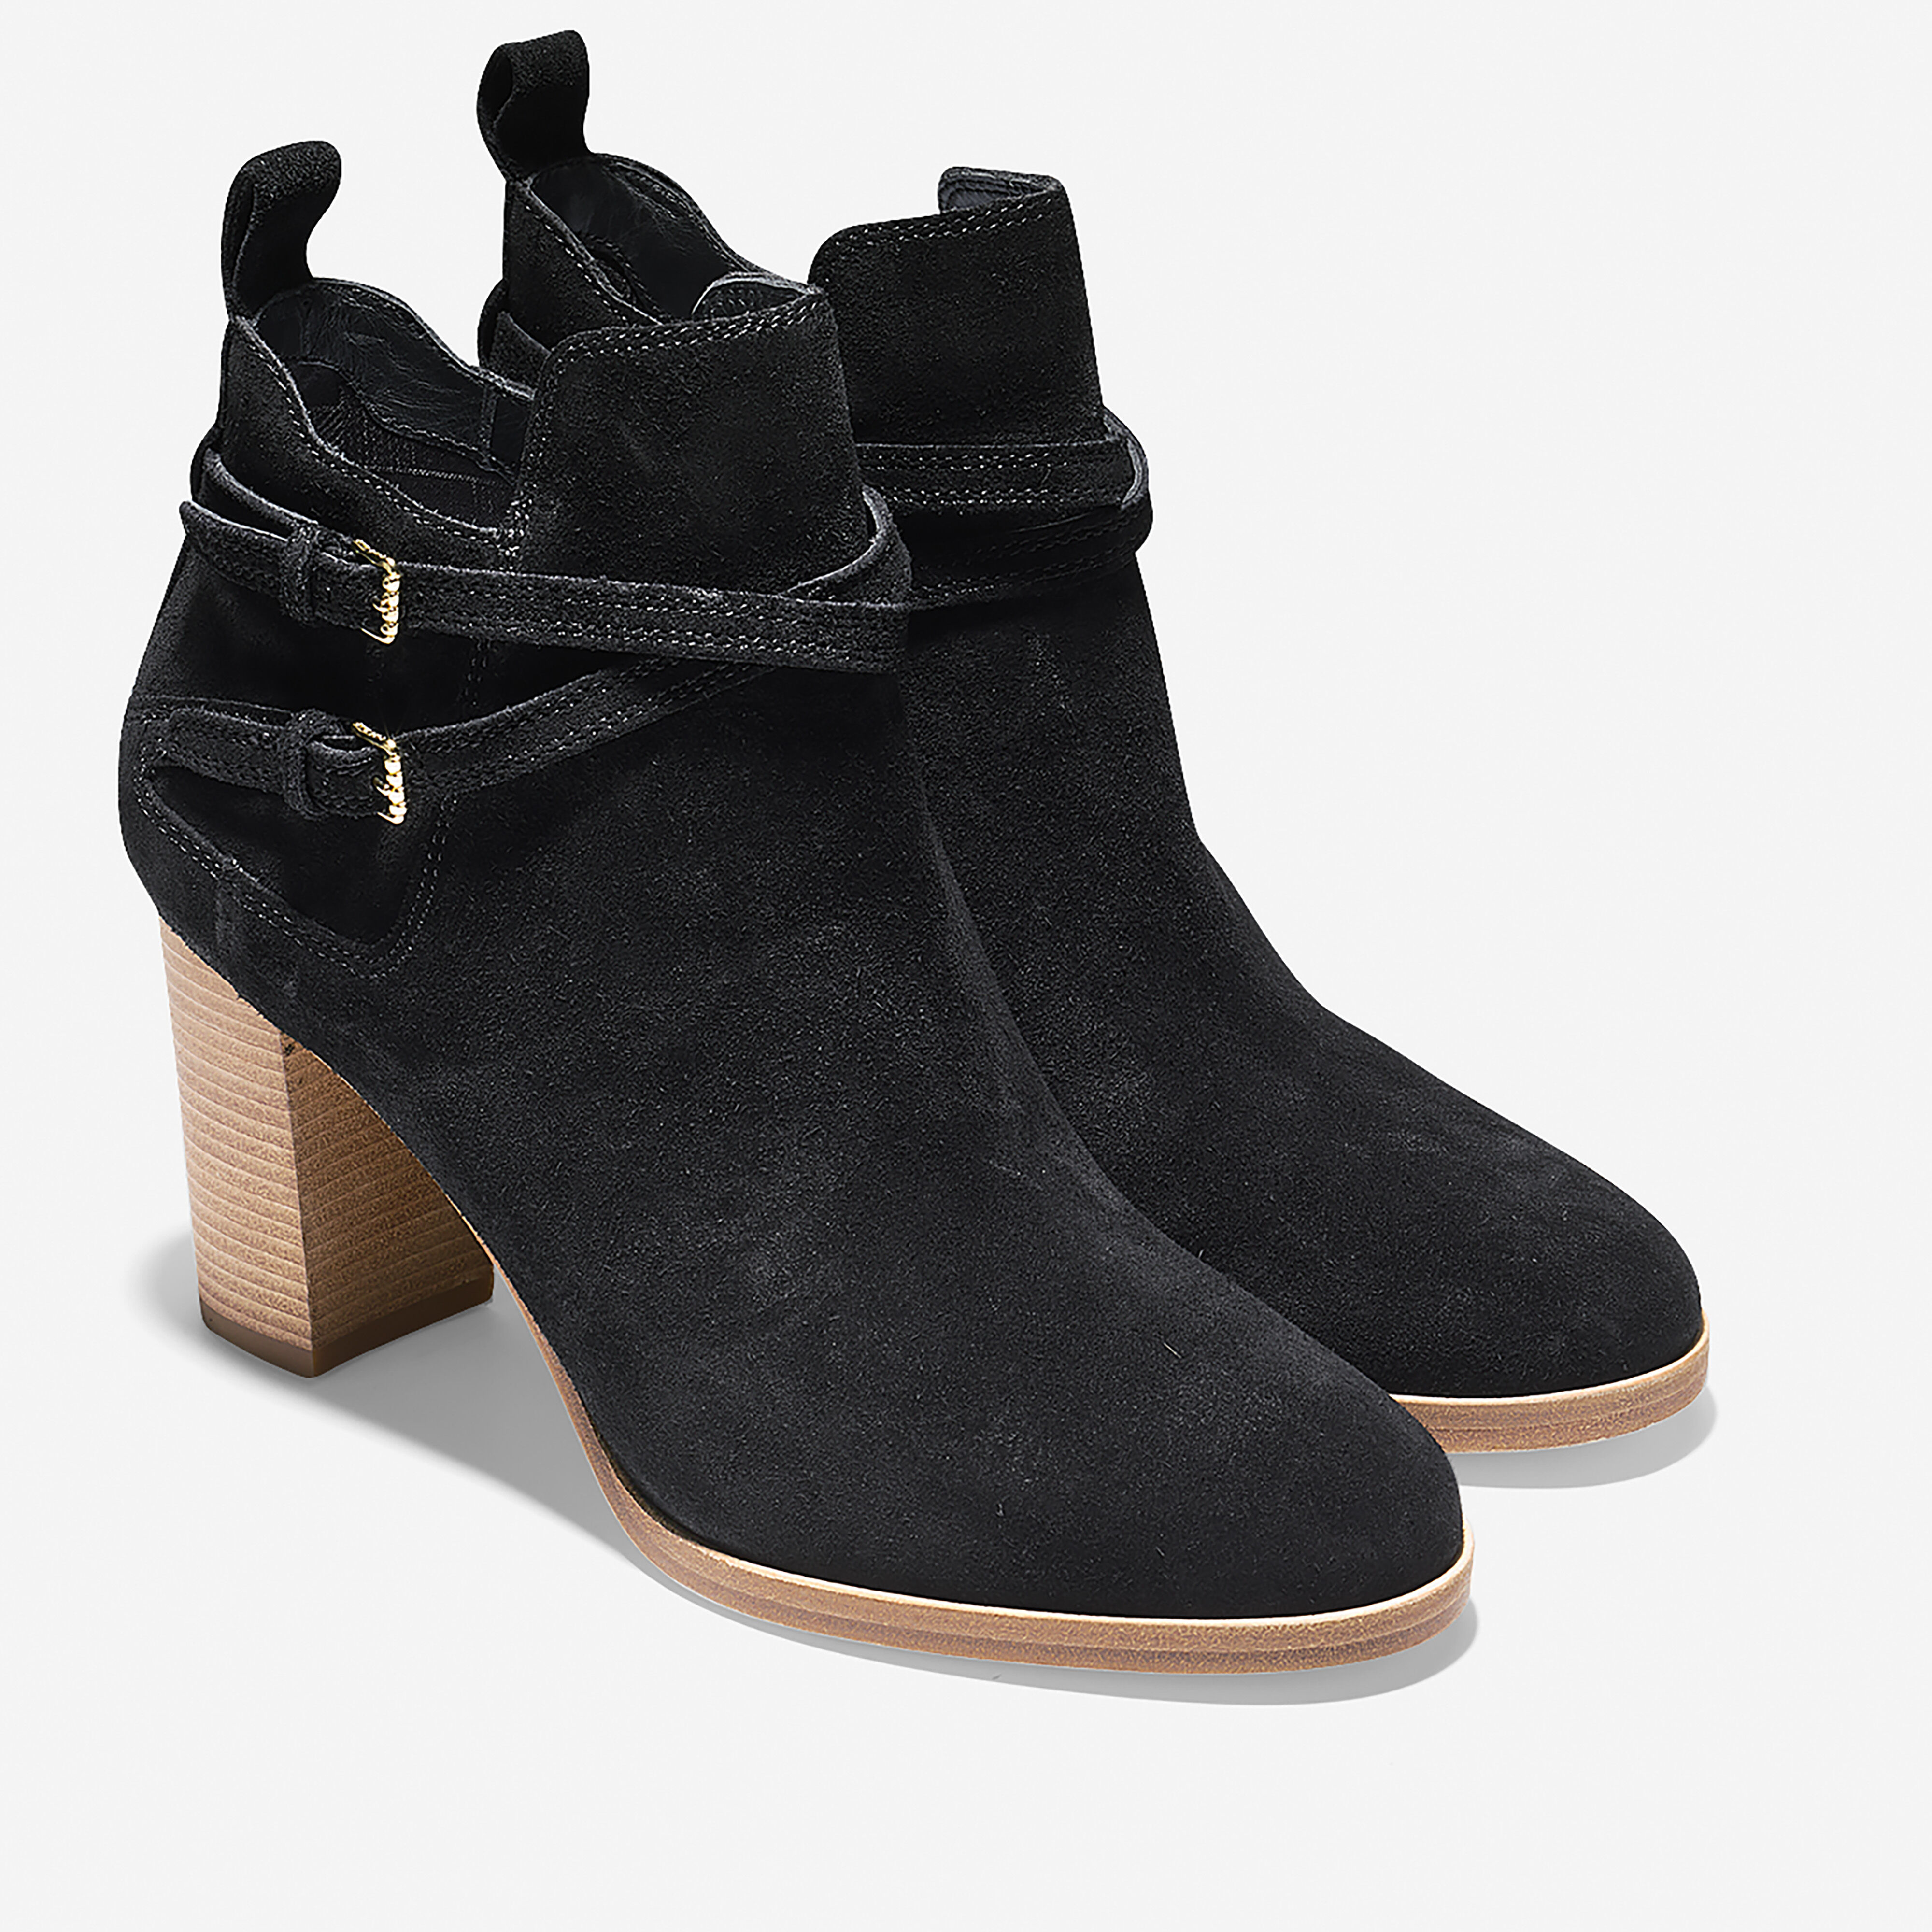 Cole Haan Linnie Stacked Heel Bootie i1sztWIGS